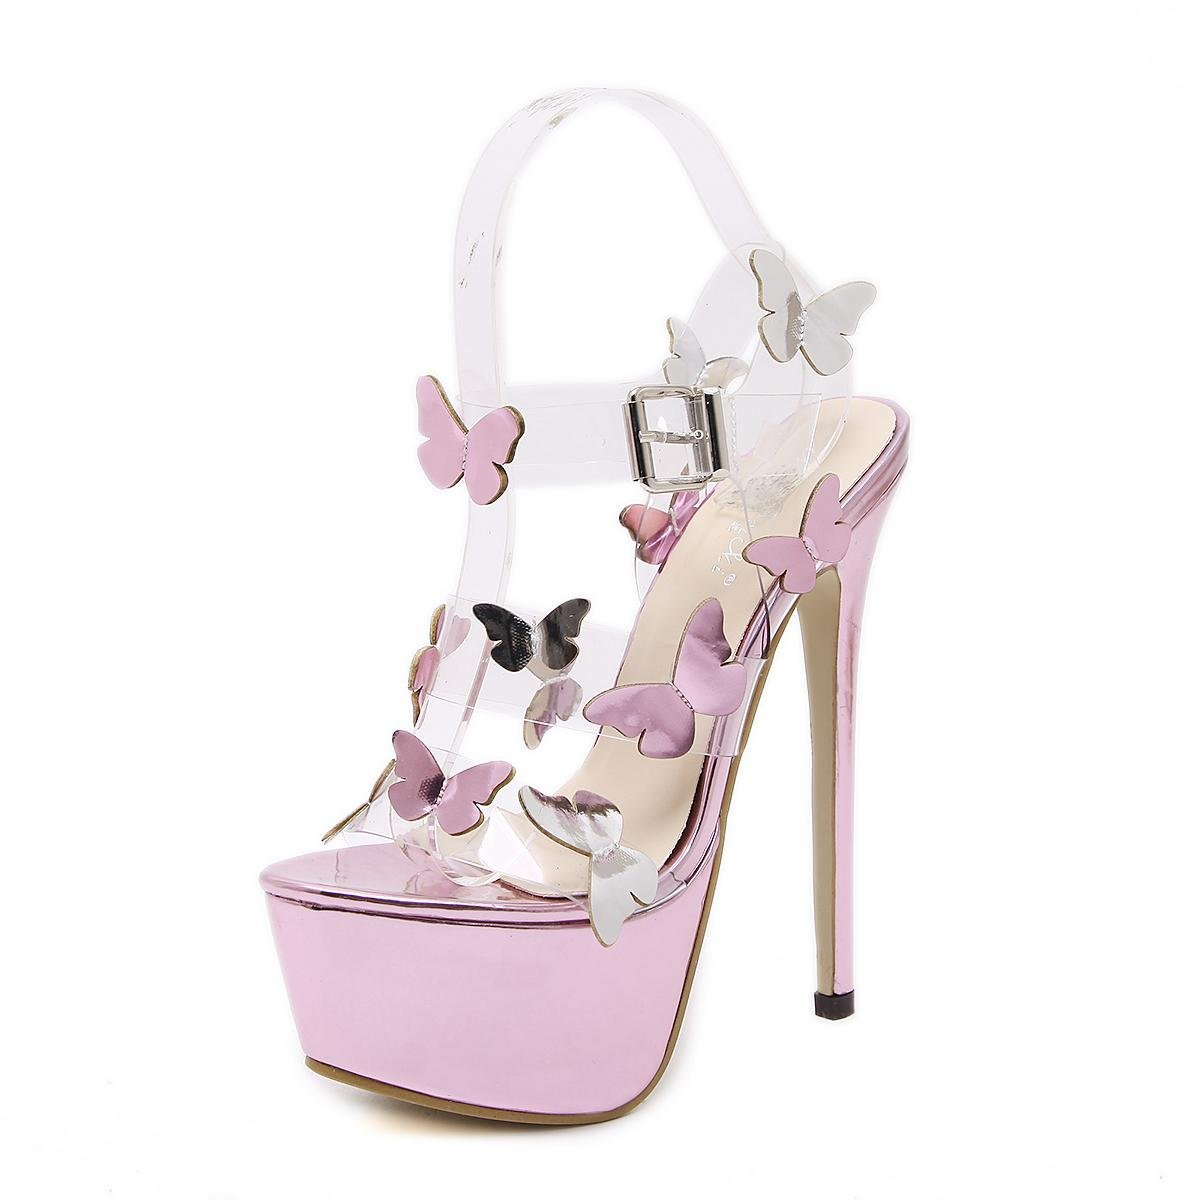 Femmes plate-forme hauts talons robe de robe danse Femmes sandales pink confortables pink 423b422 - therethere.space